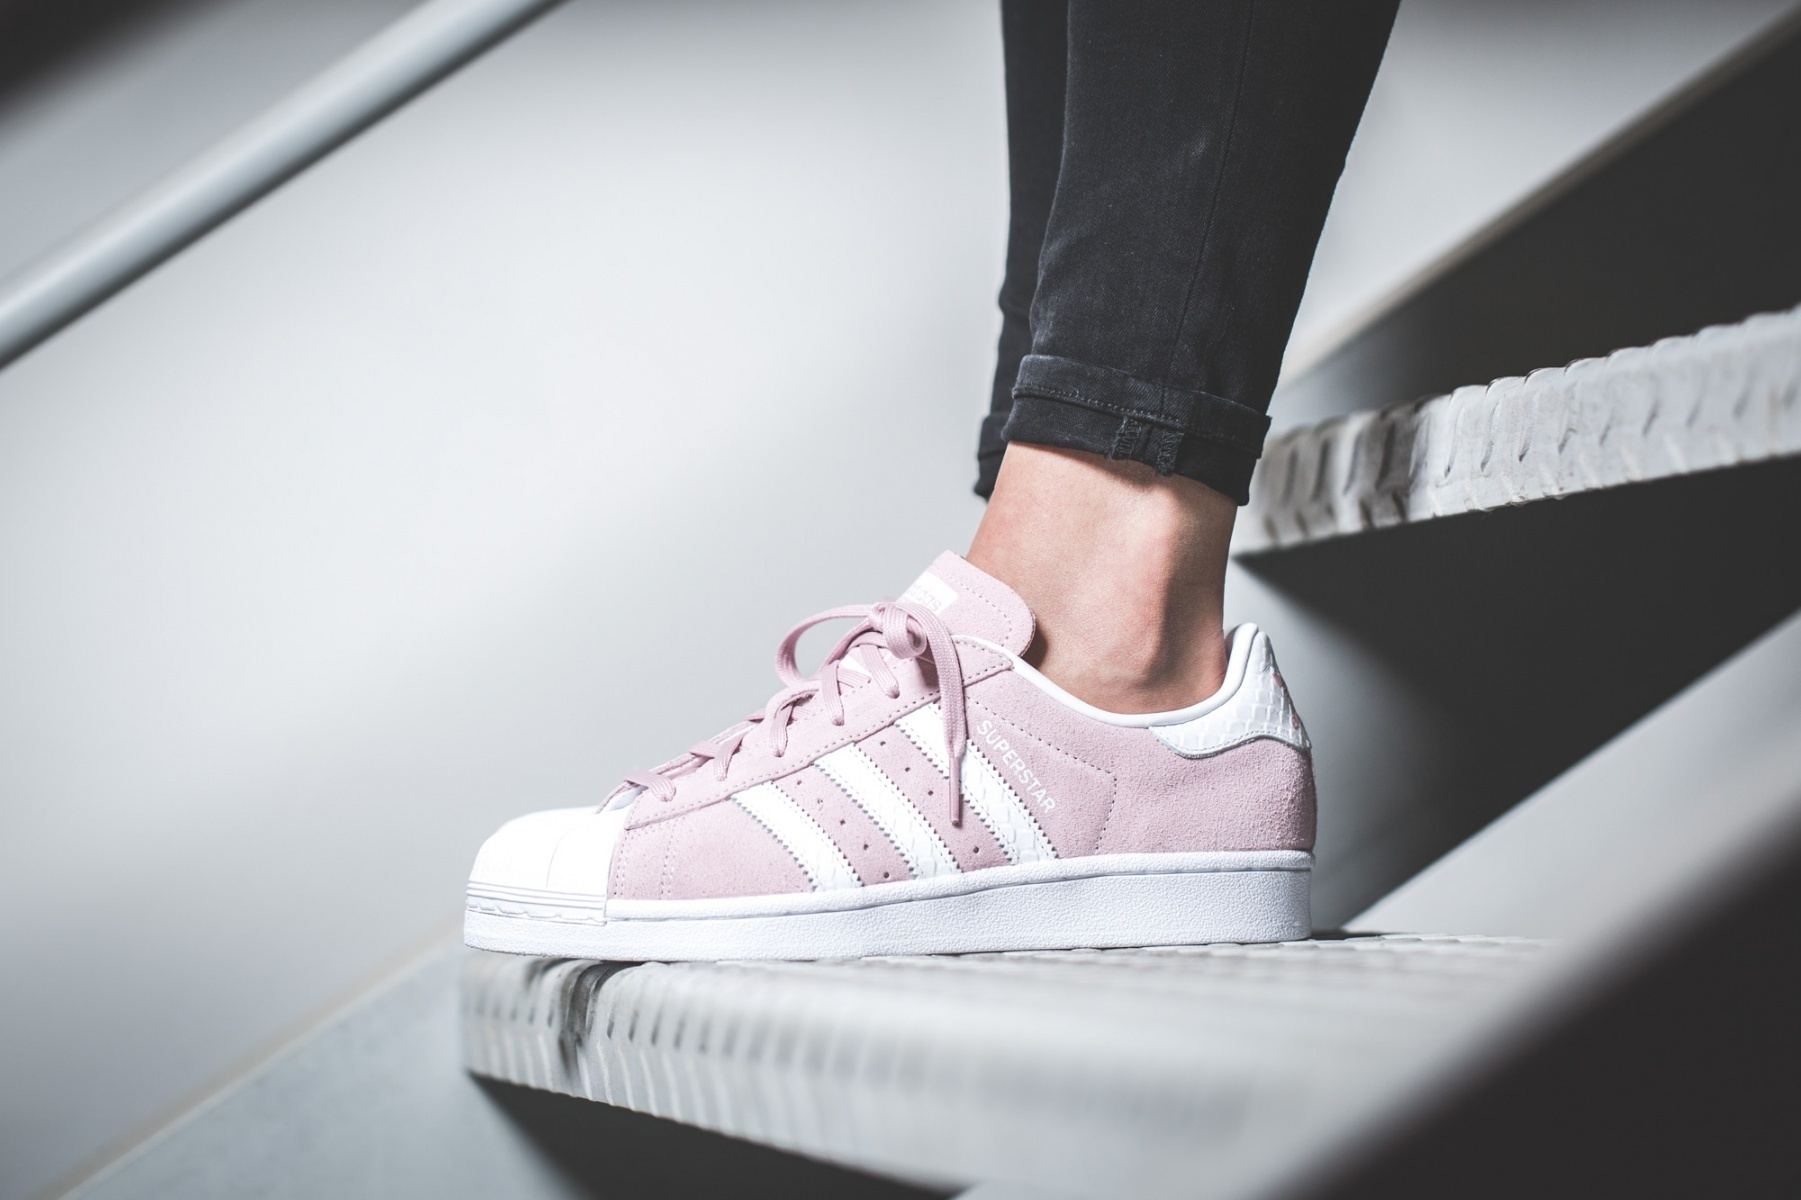 adidas Low-Top ADIDAS SUPERSTAR W PINK pink sneakers 8